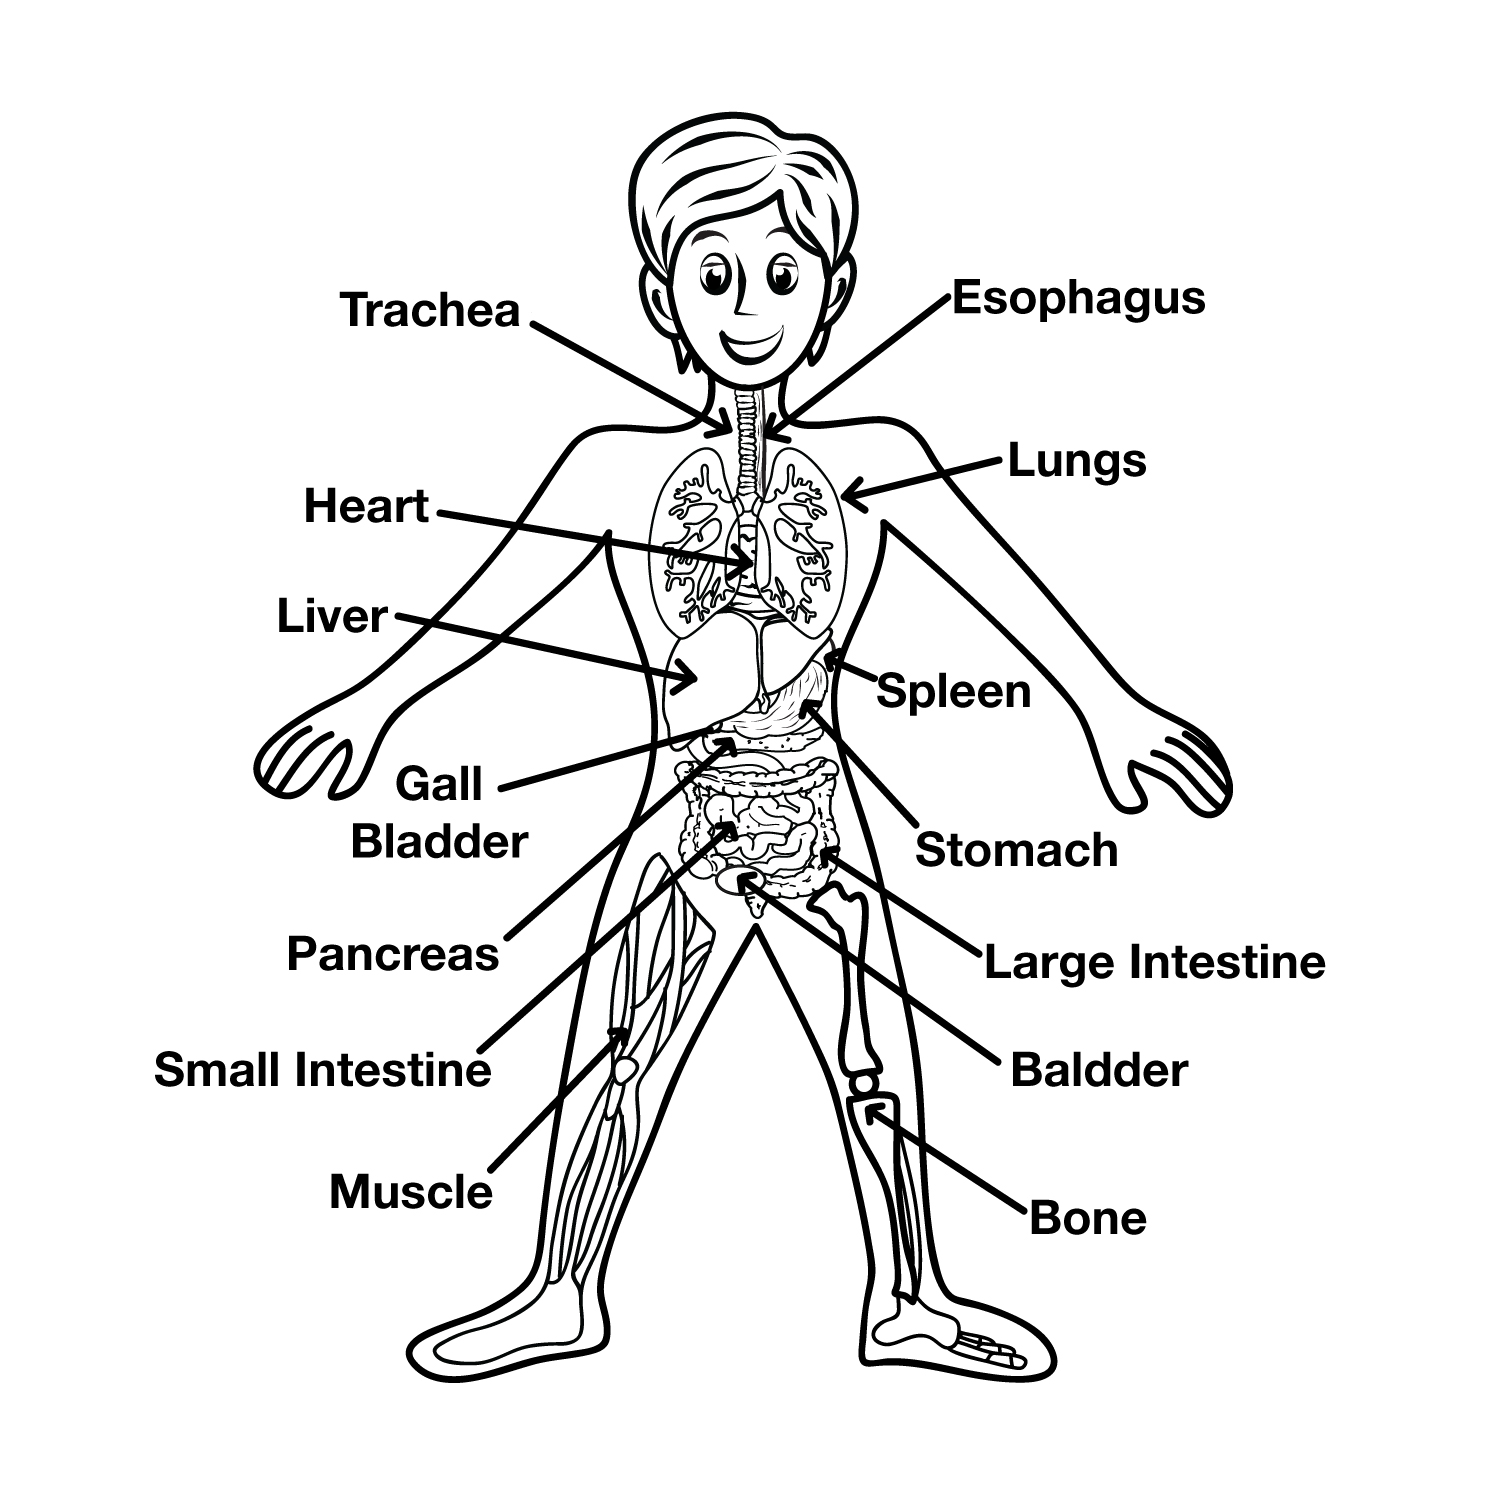 human organ systems coloring pages - photo#35